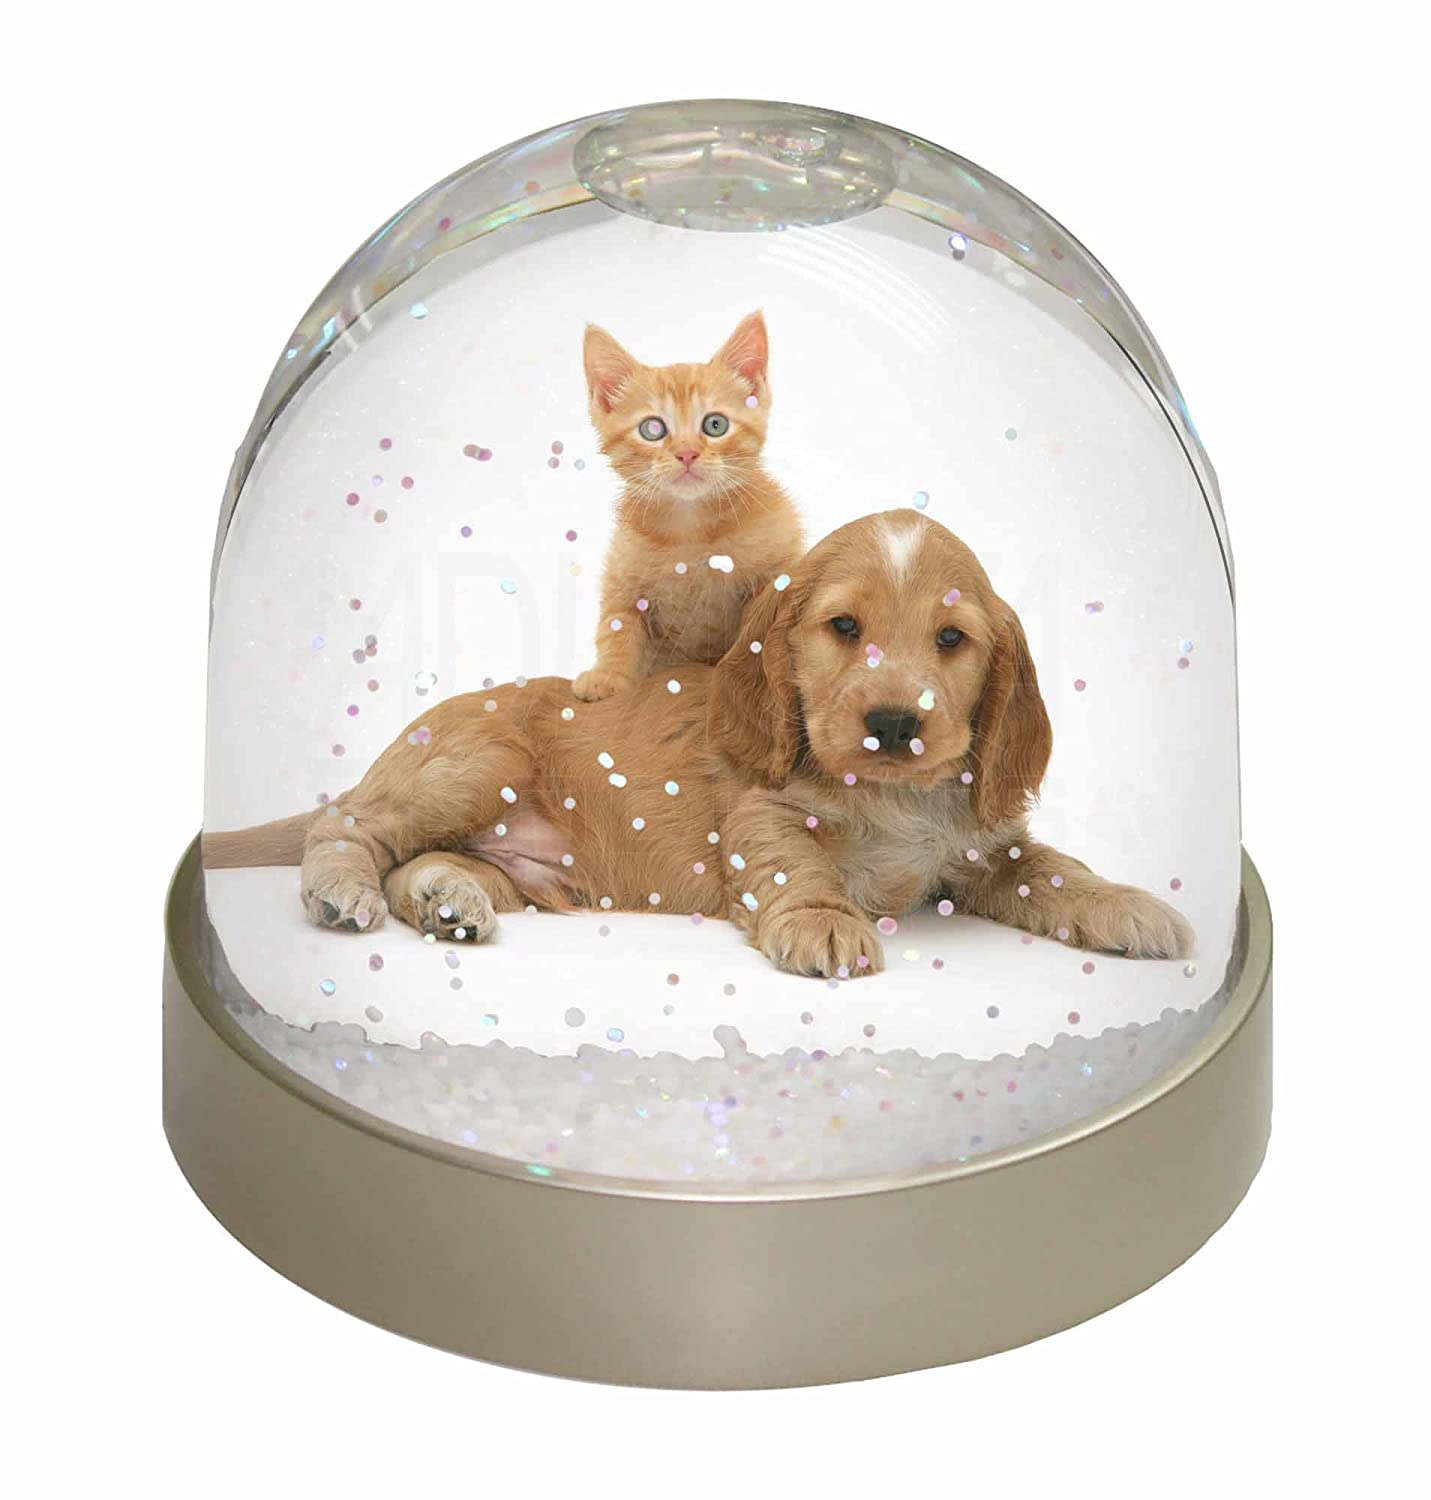 Advanta Cocker Spaniel and Kitten Love Snow Dome Globe Waterball Gift, Multi-Colour, 9.2 x 9.2 x 8 cm Advanta Products AD-SC14GL